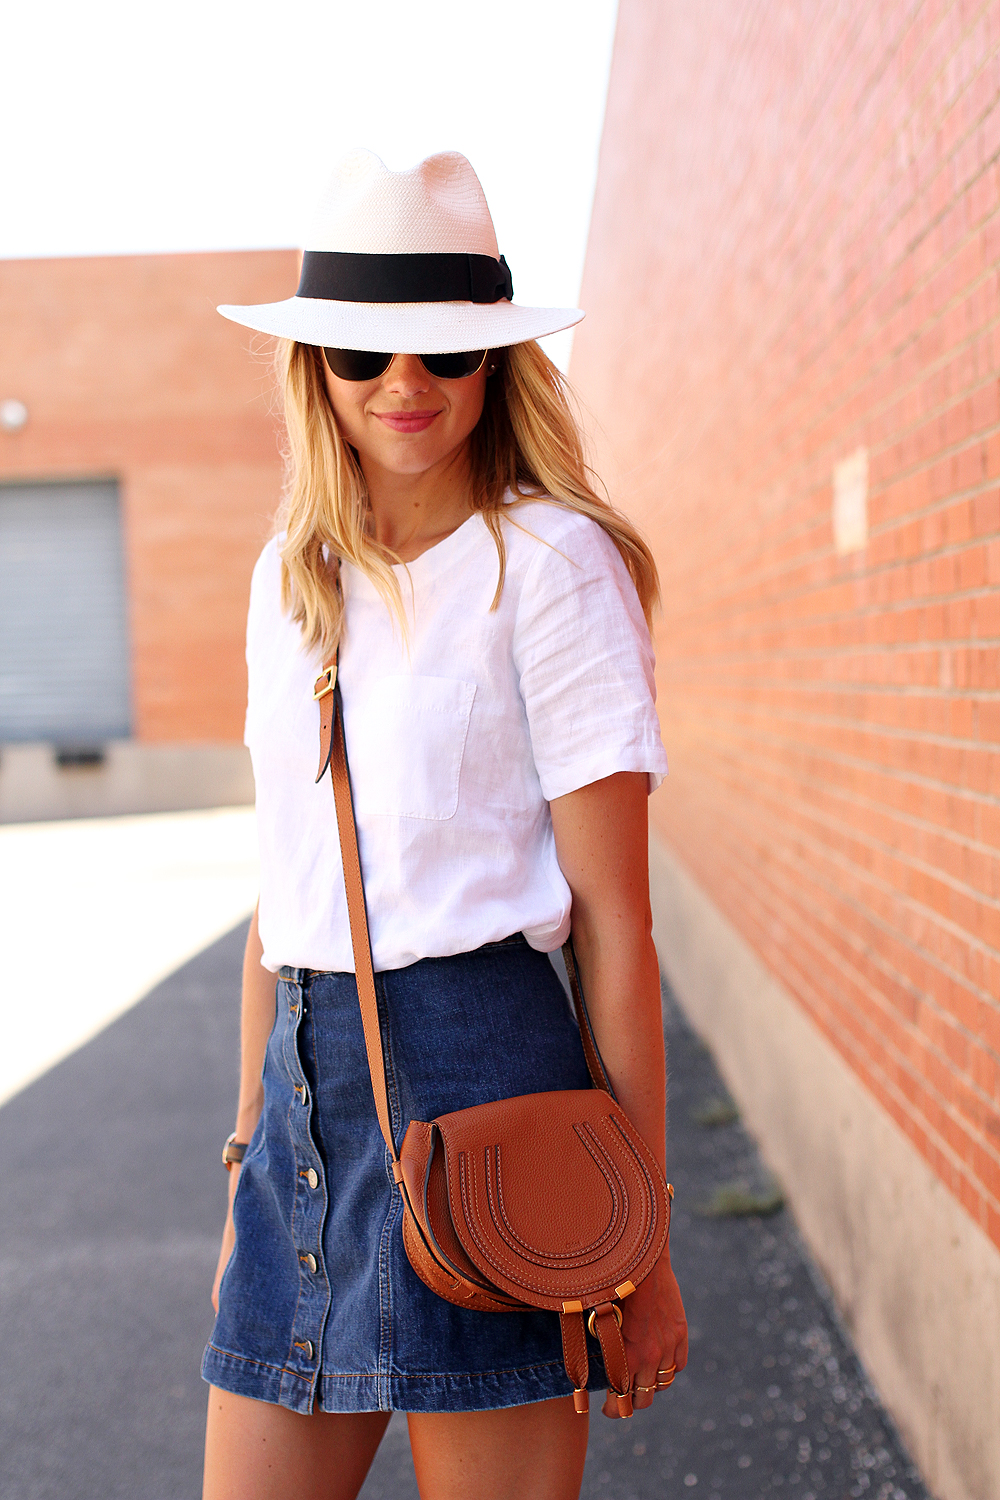 Jean skirt and top – Modern skirts blog for you